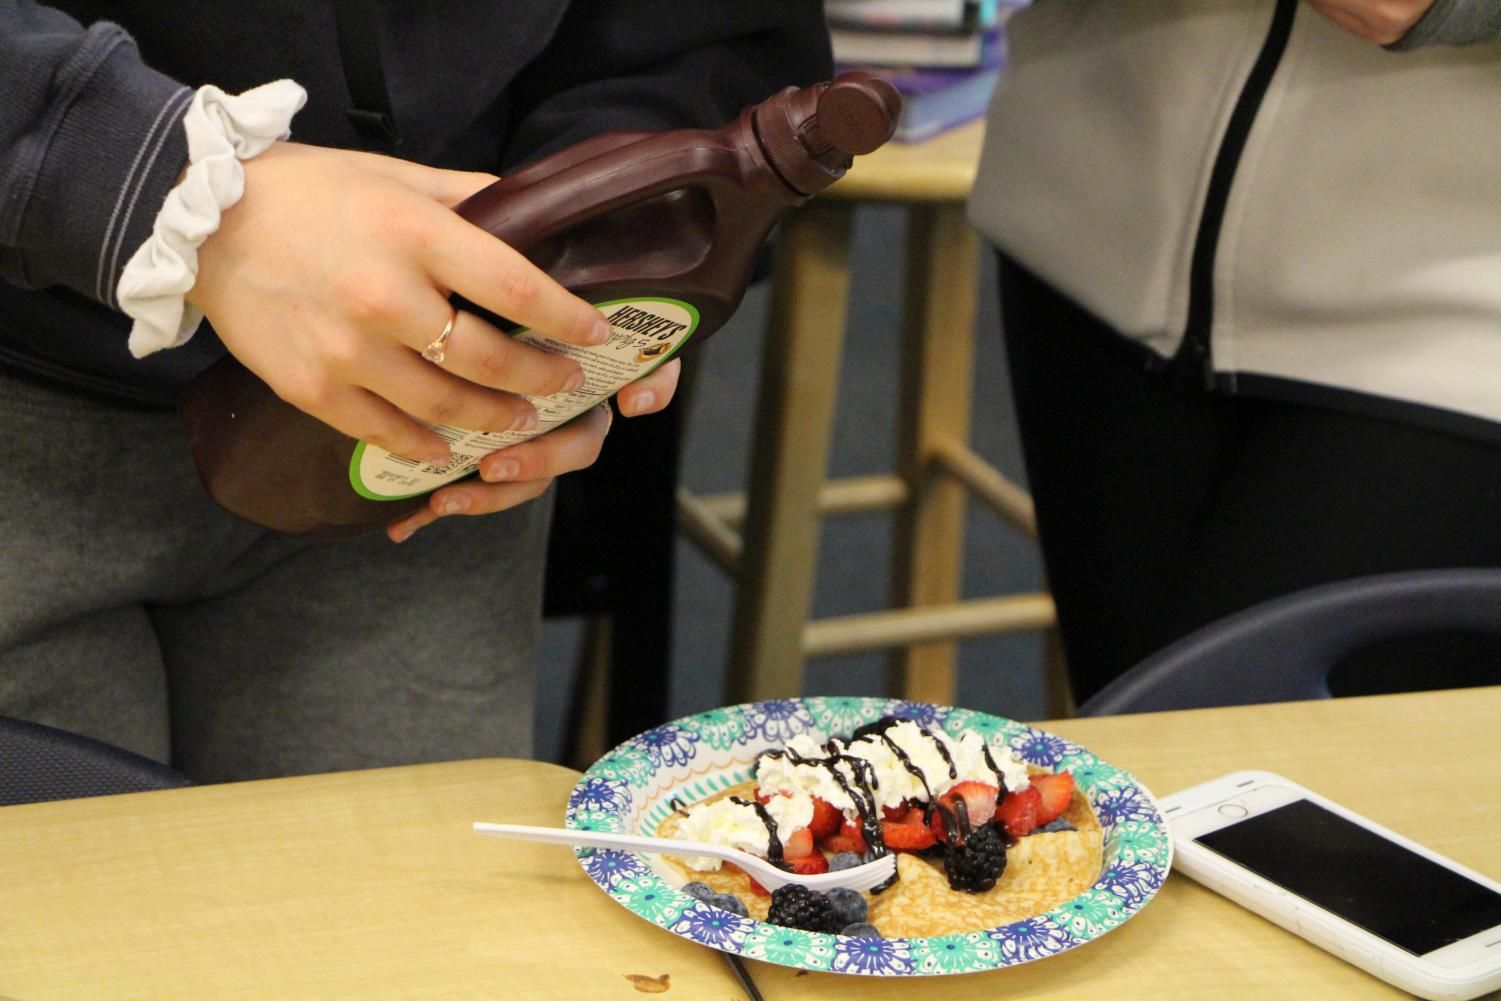 Chocolate+syrup+and+whipped+cream+were+among+students%27+favorite+toppings+to+use.+%22The+crepes+were+fire%2C%22+Graham+Davis%2C+sophomore%2C+said.+%22I+just+wish+they+had+more+whipped+cream%2C+because+they+ran+out+really+fast.%22